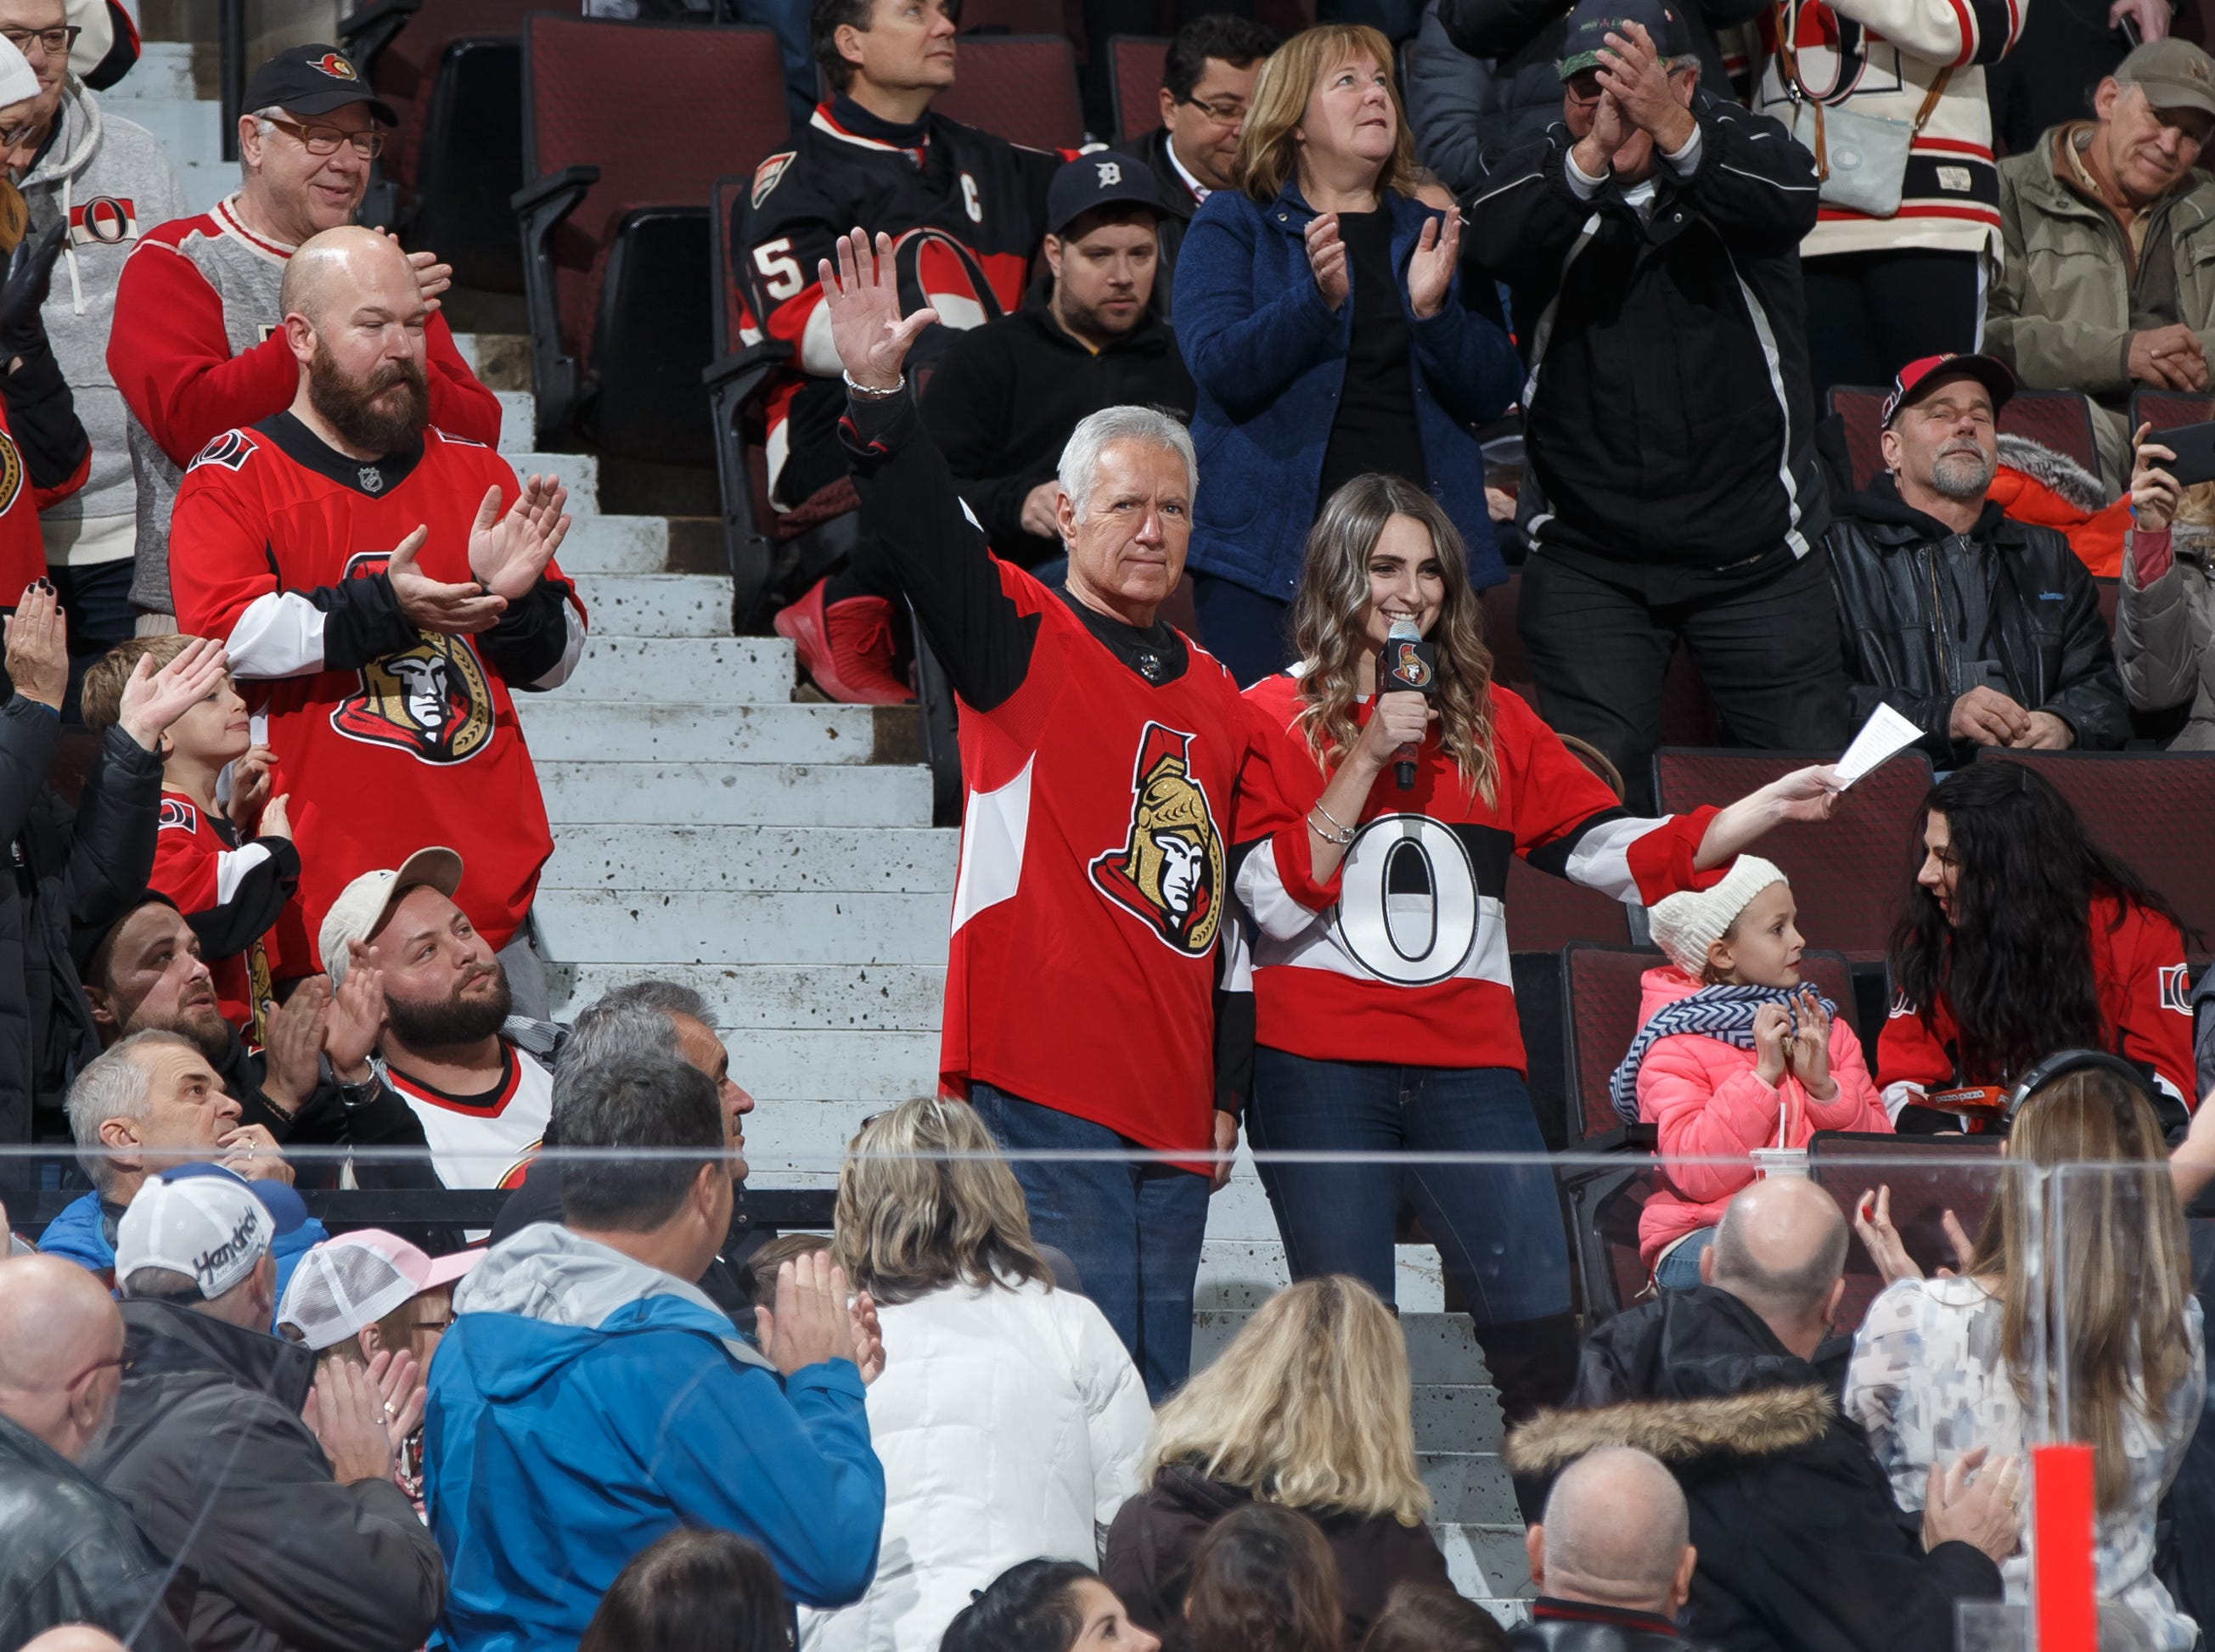 Alex Trebek is introduced during a stoppage in play in an NHL game between the Ottawa Senators and the Arizona Coyotes at Canadian Tire Centre on Nov. 18, 2017 in Ottawa, Ontario, Canada.